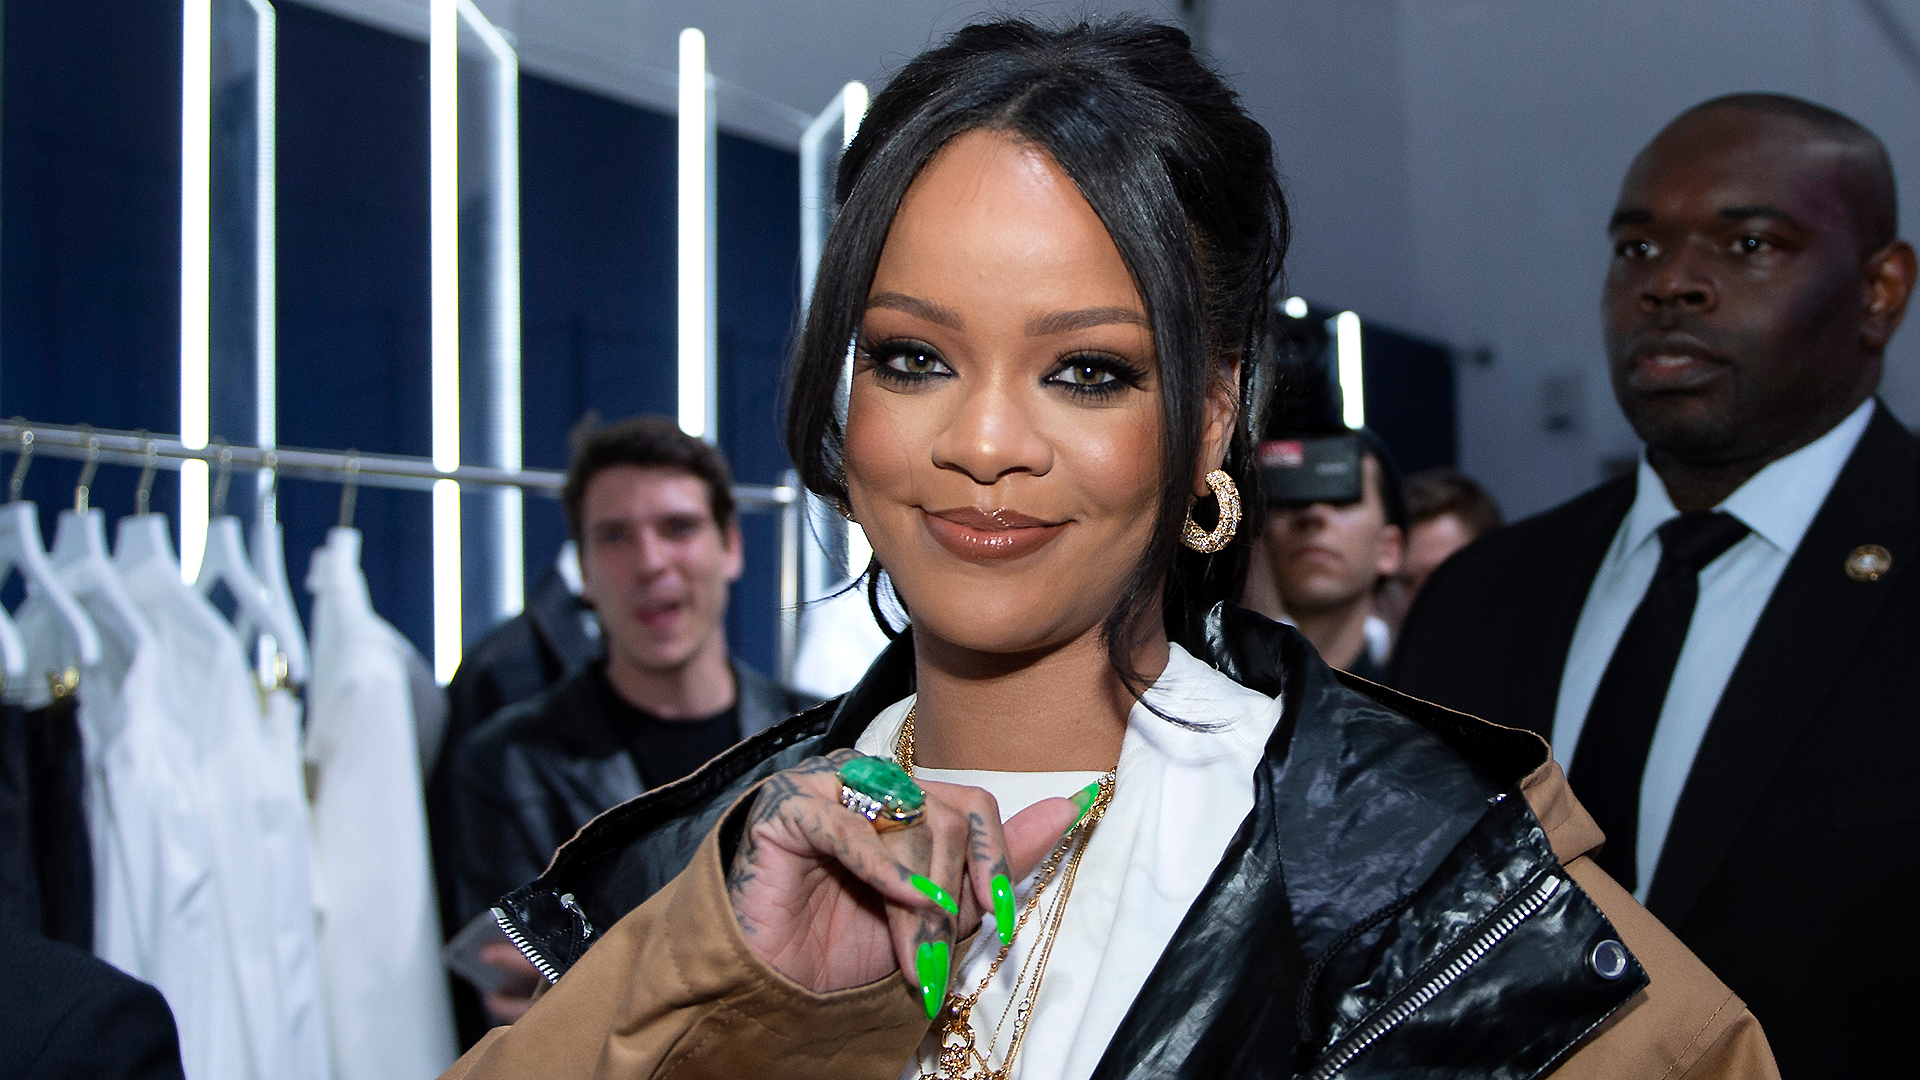 Rihanna confirms she turned down Super Bowl halftime show: 'I just couldn't be a sellout'